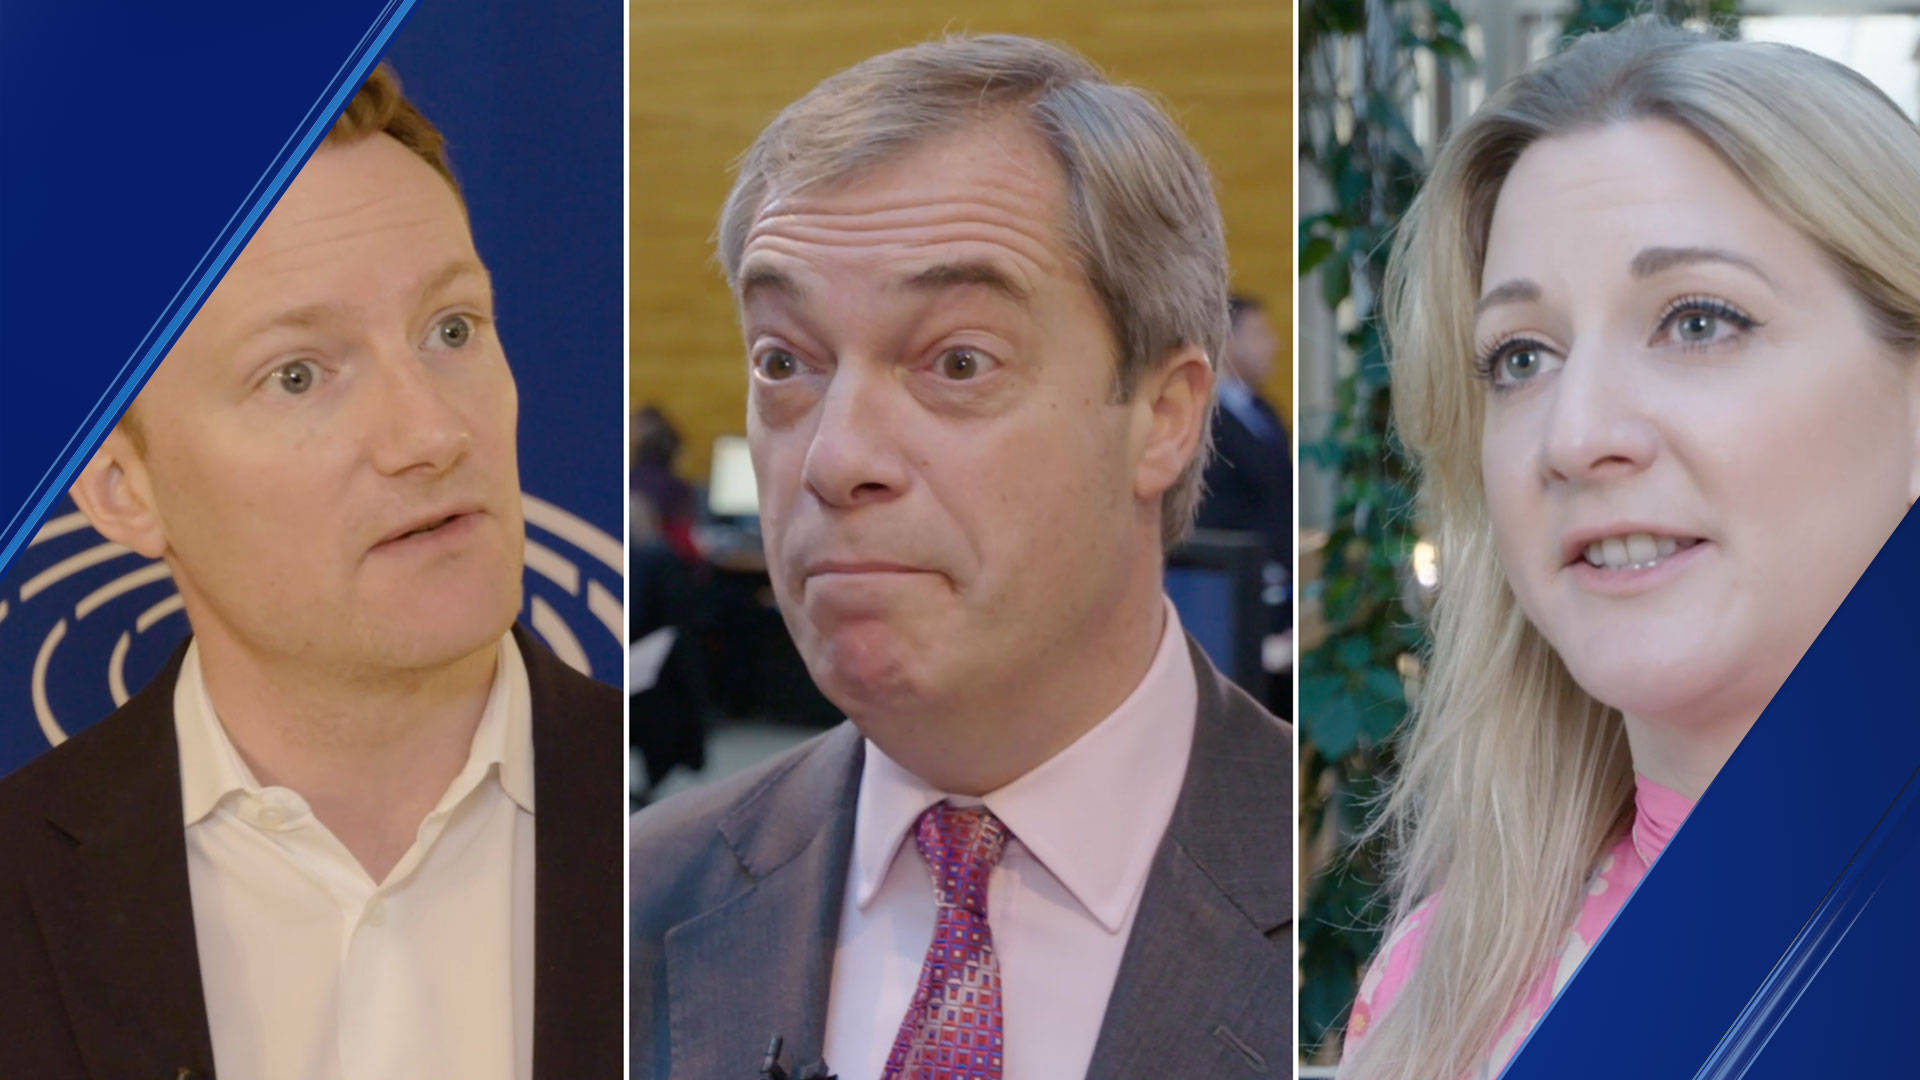 Brexit: What will MEPs miss most when we leave the EU?